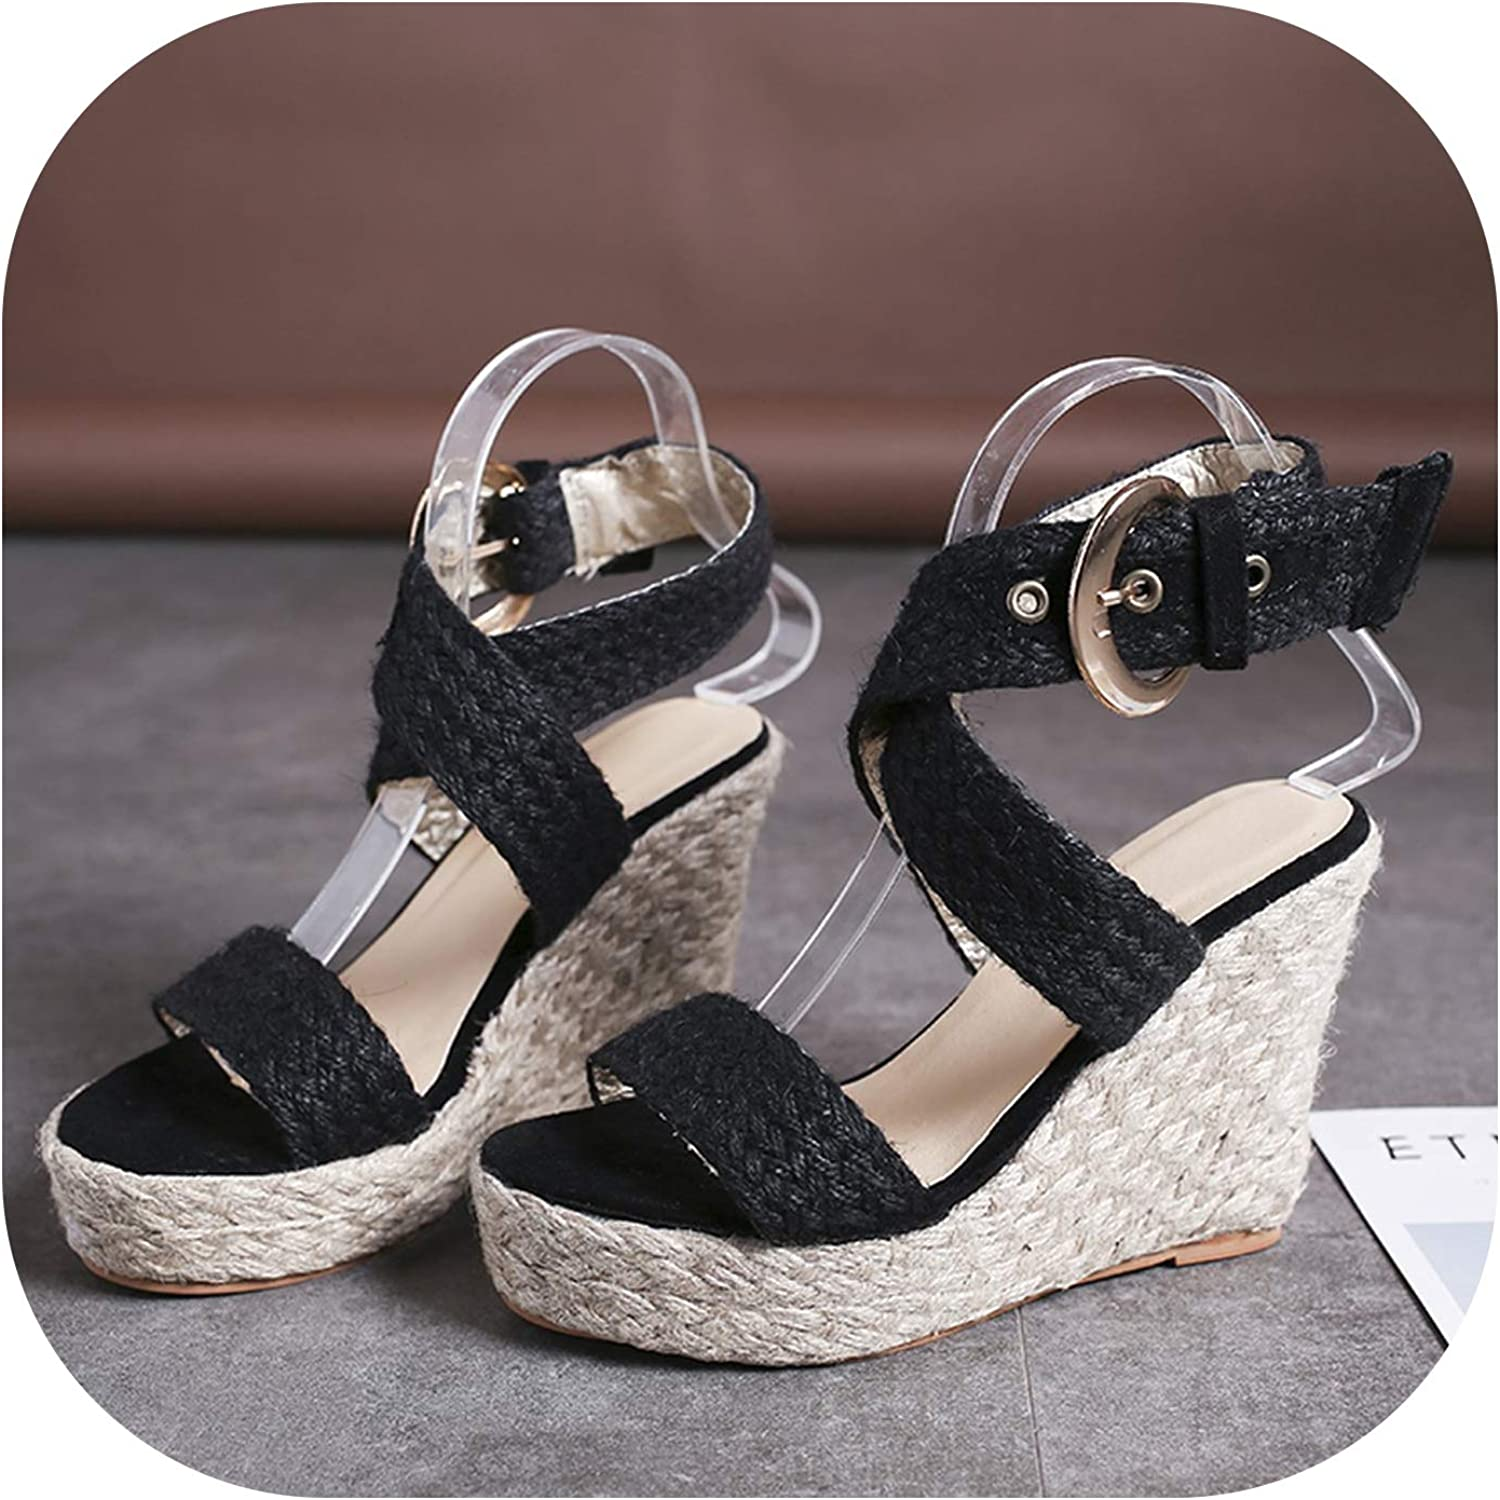 2019 Summer shoes Woman Platform Sandals Wedges shoes for Women Wedge Heels Sandalias